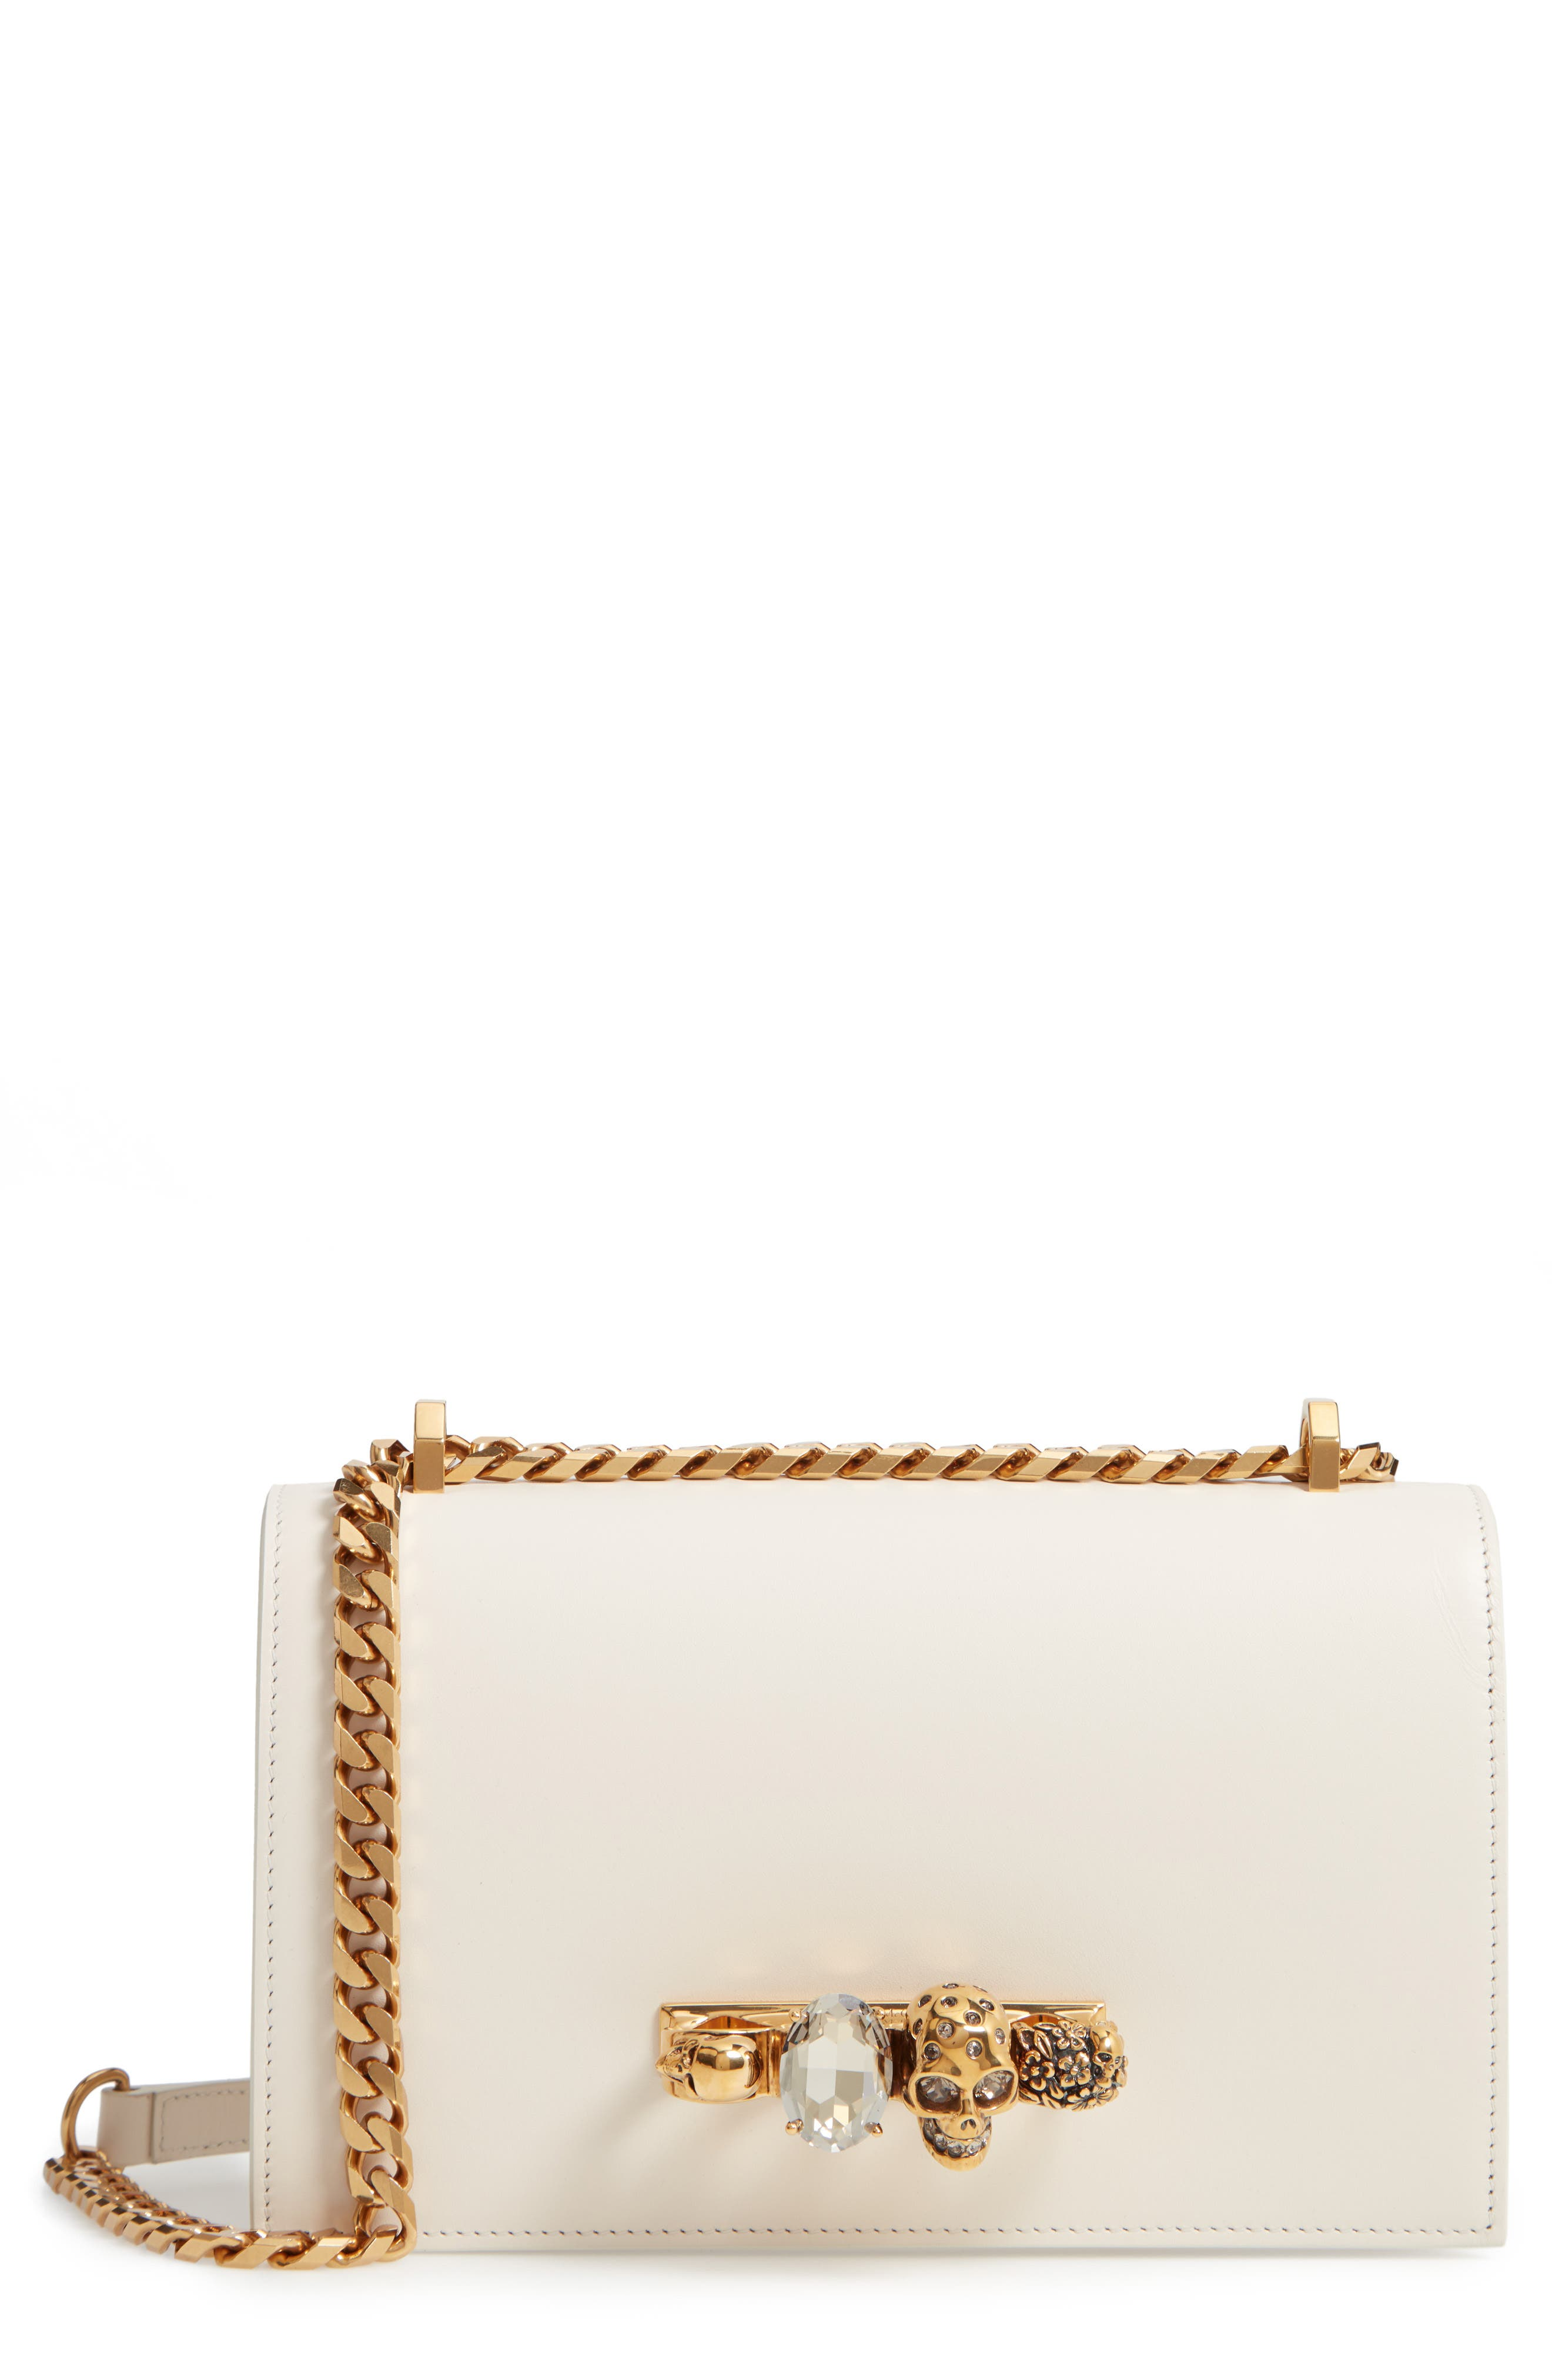 ALEXANDER MCQUEEN,                             Leather Crossbody Bag,                             Main thumbnail 1, color,                             OFF WHITE